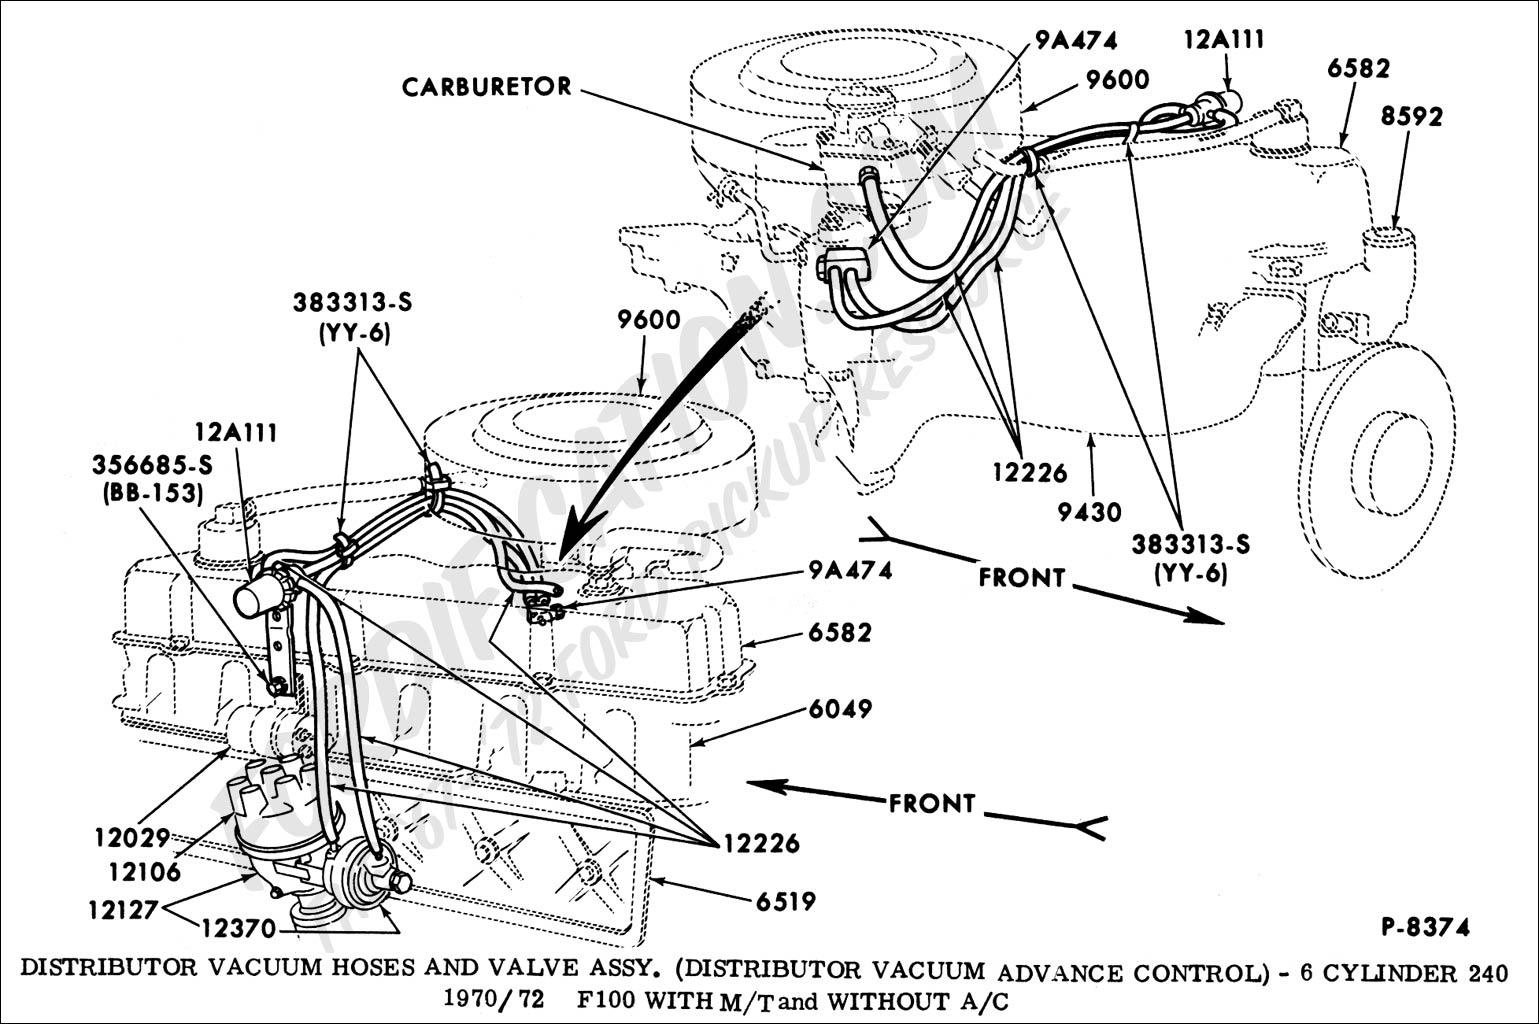 1970 ford f 250 vacuum diagram today wiring diagram1970 ford f 250 carb vacuum diagram box wiring diagram 1978 ford bronco vacuum diagrams 1970 ford f 250 vacuum diagram